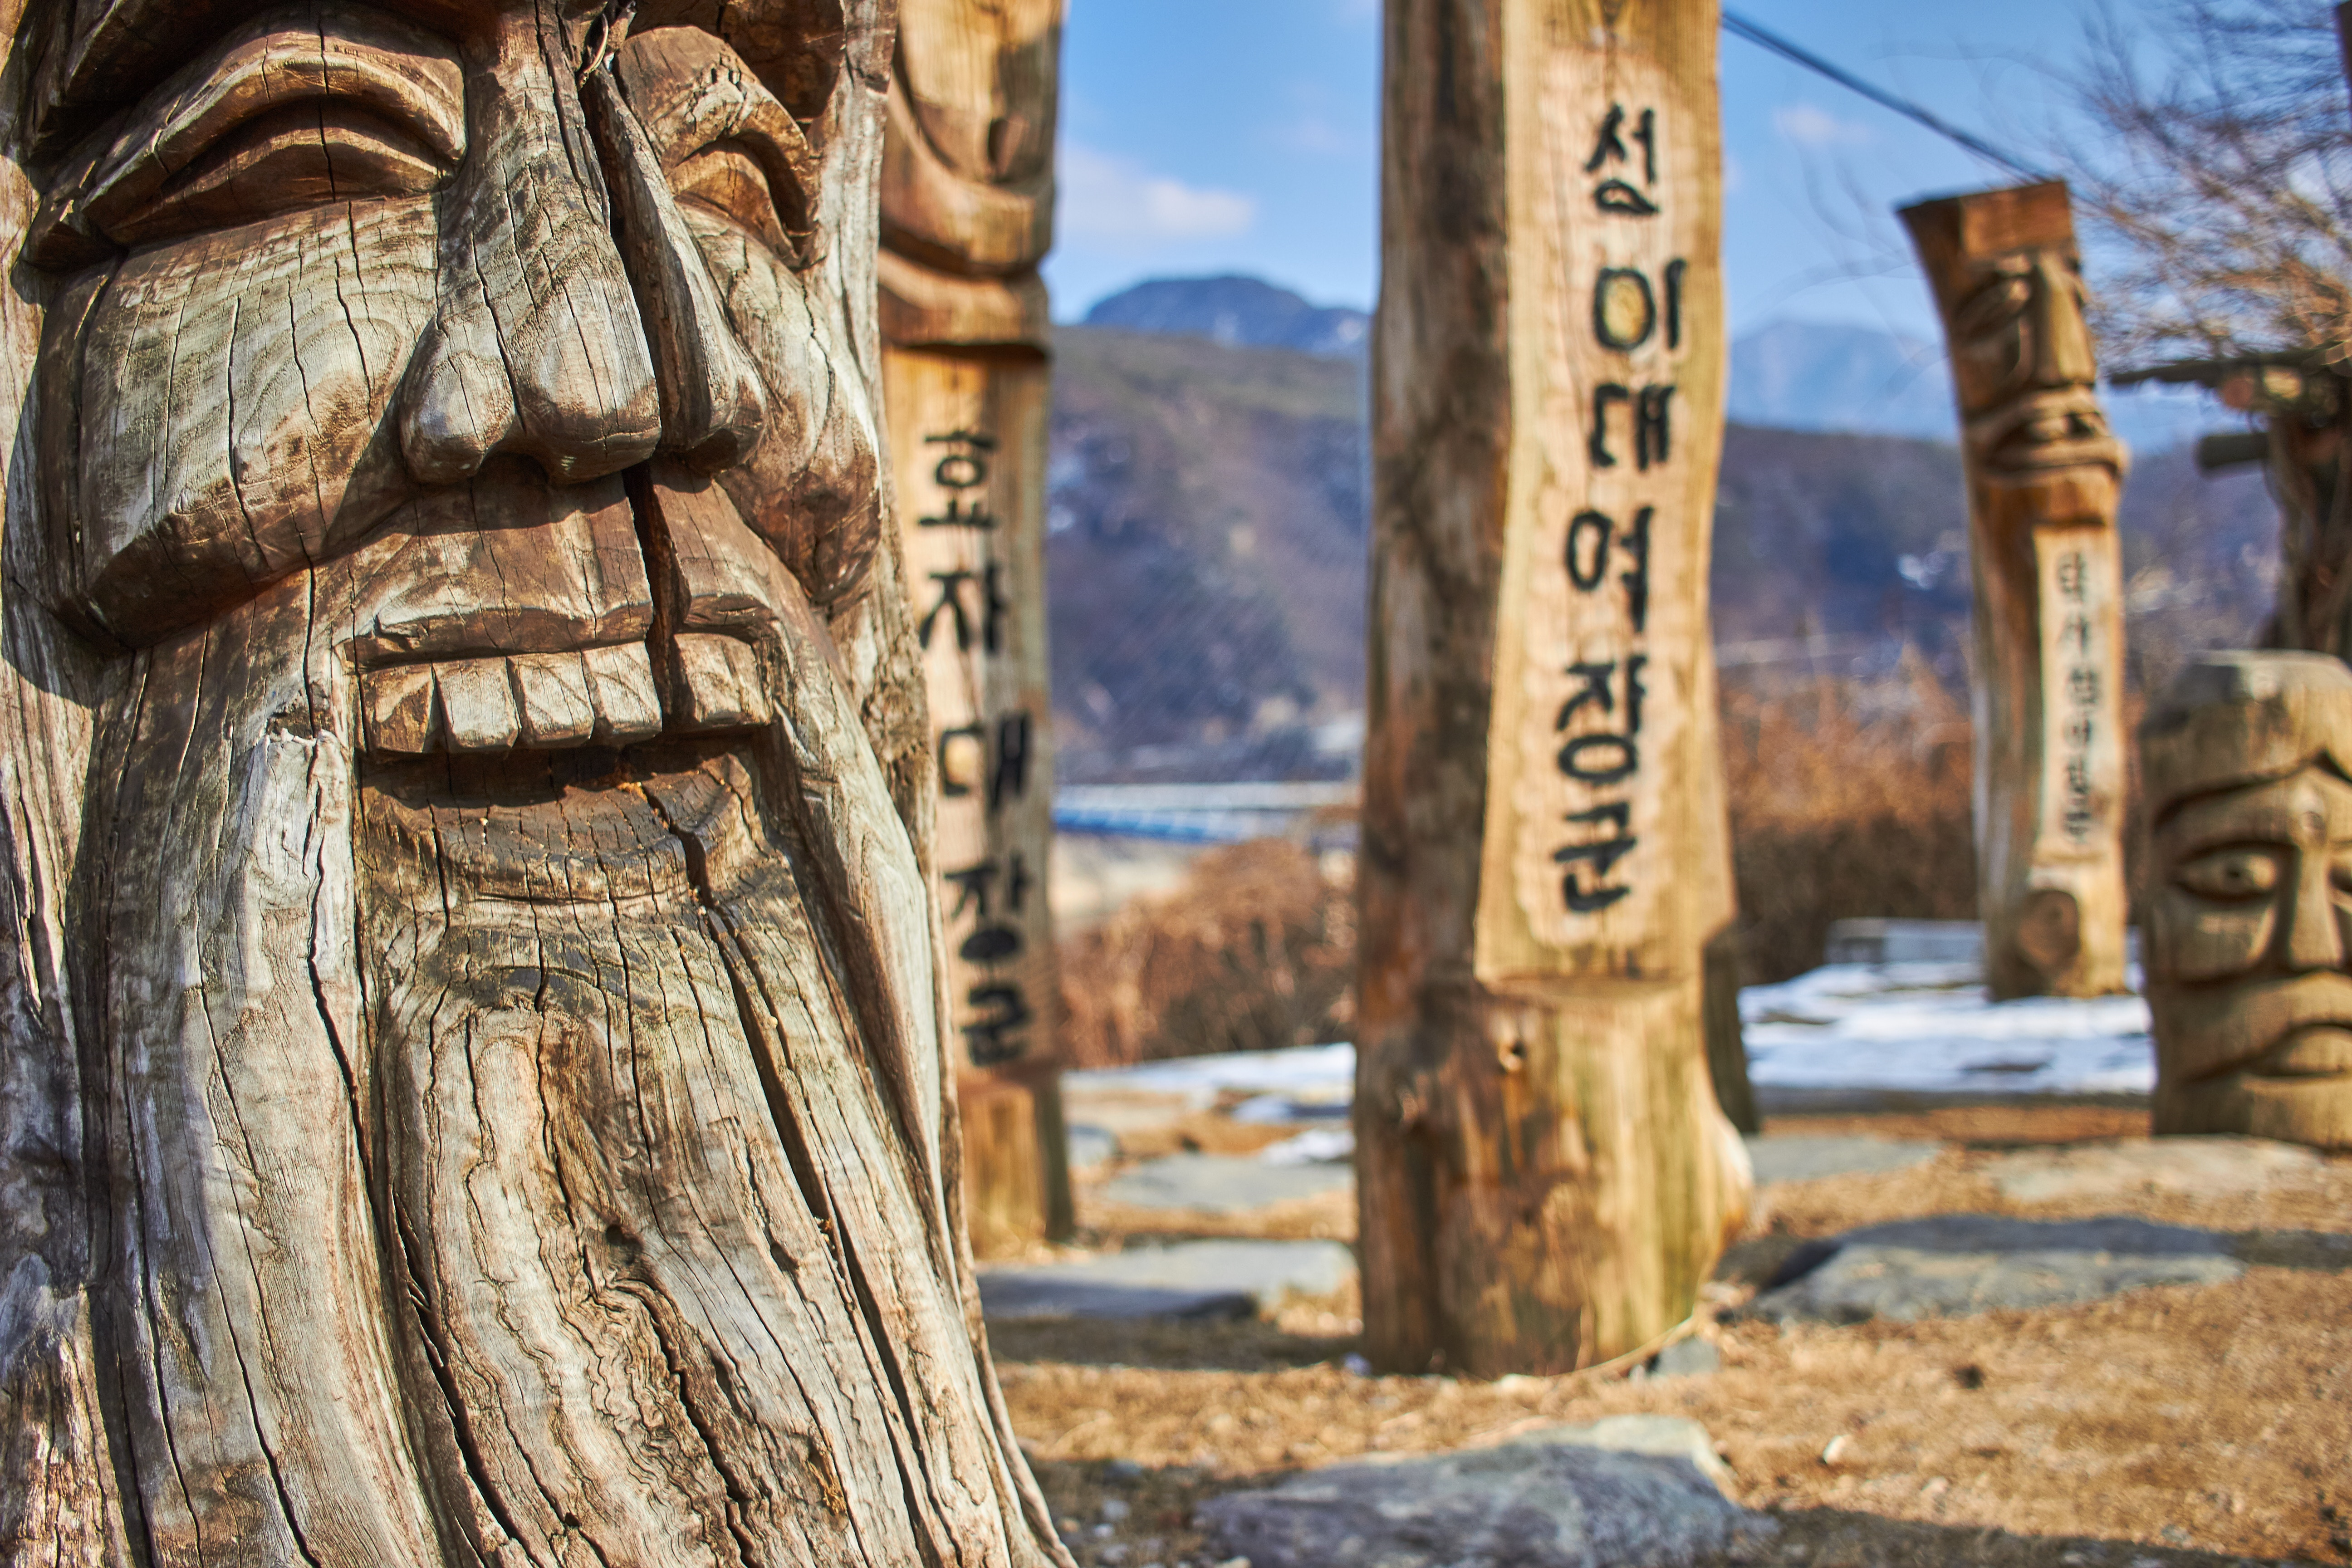 Faces carved into wood with Hangul written on the sides.